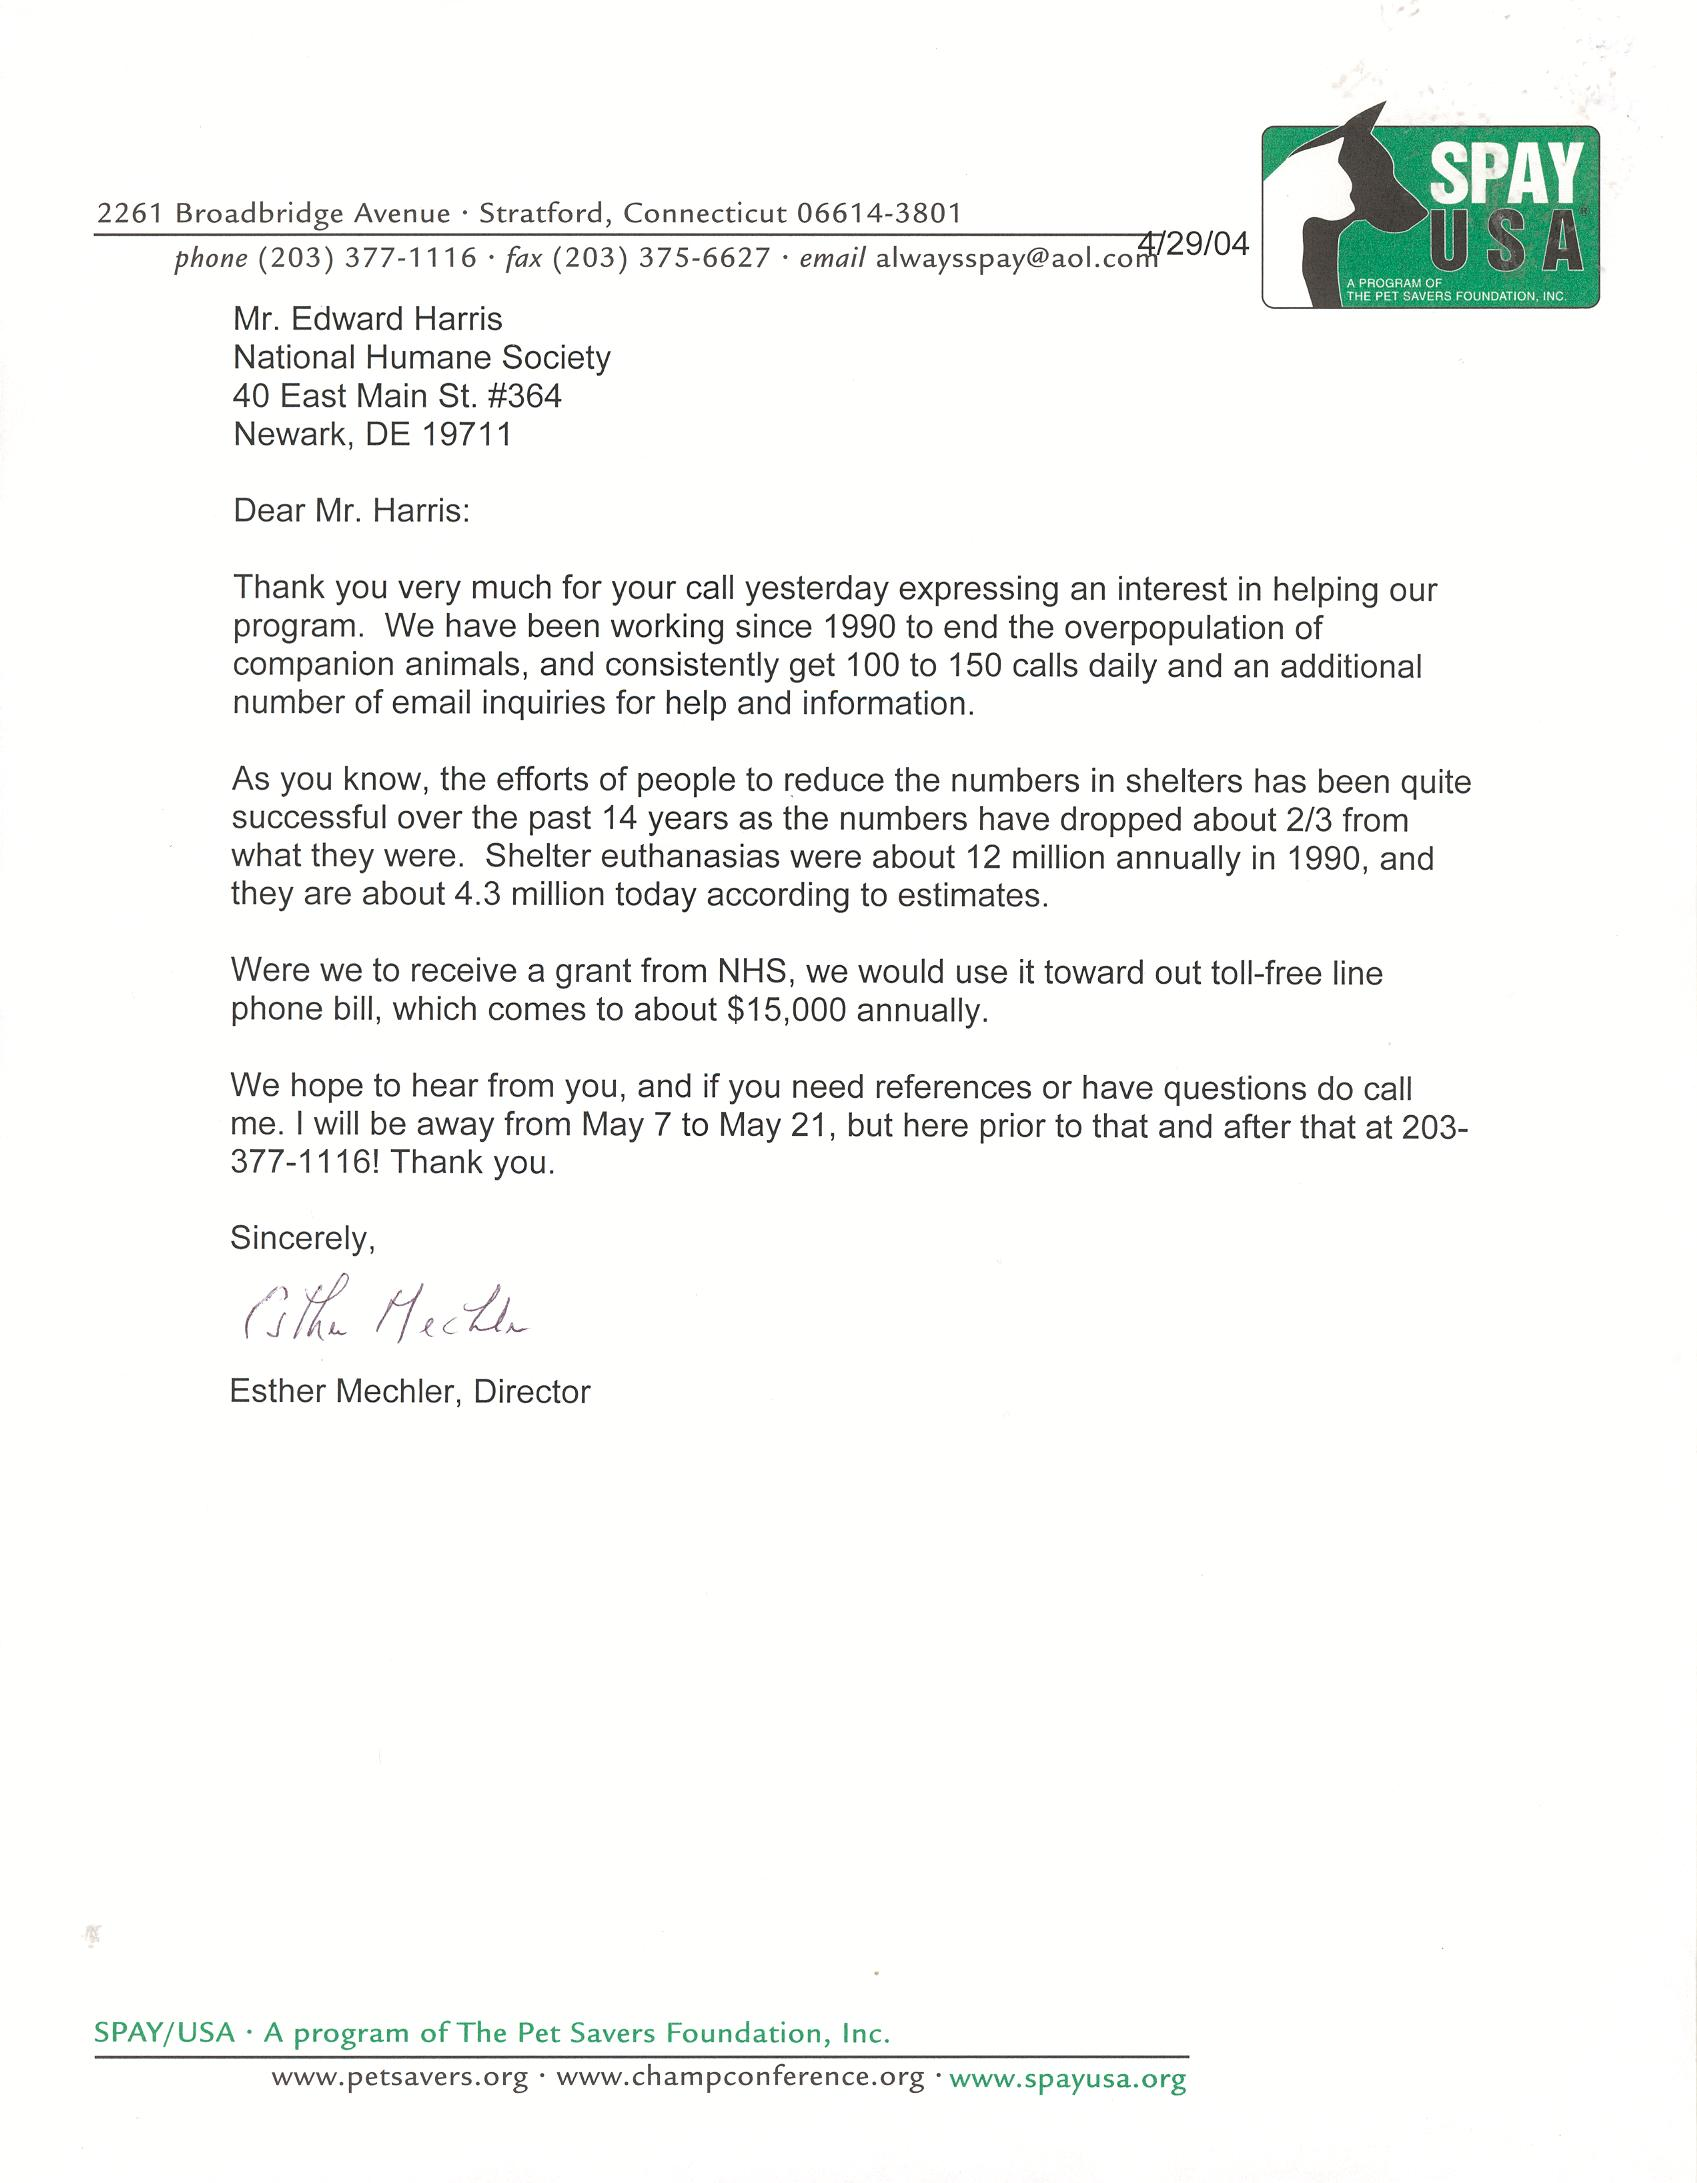 Spay USA Letter